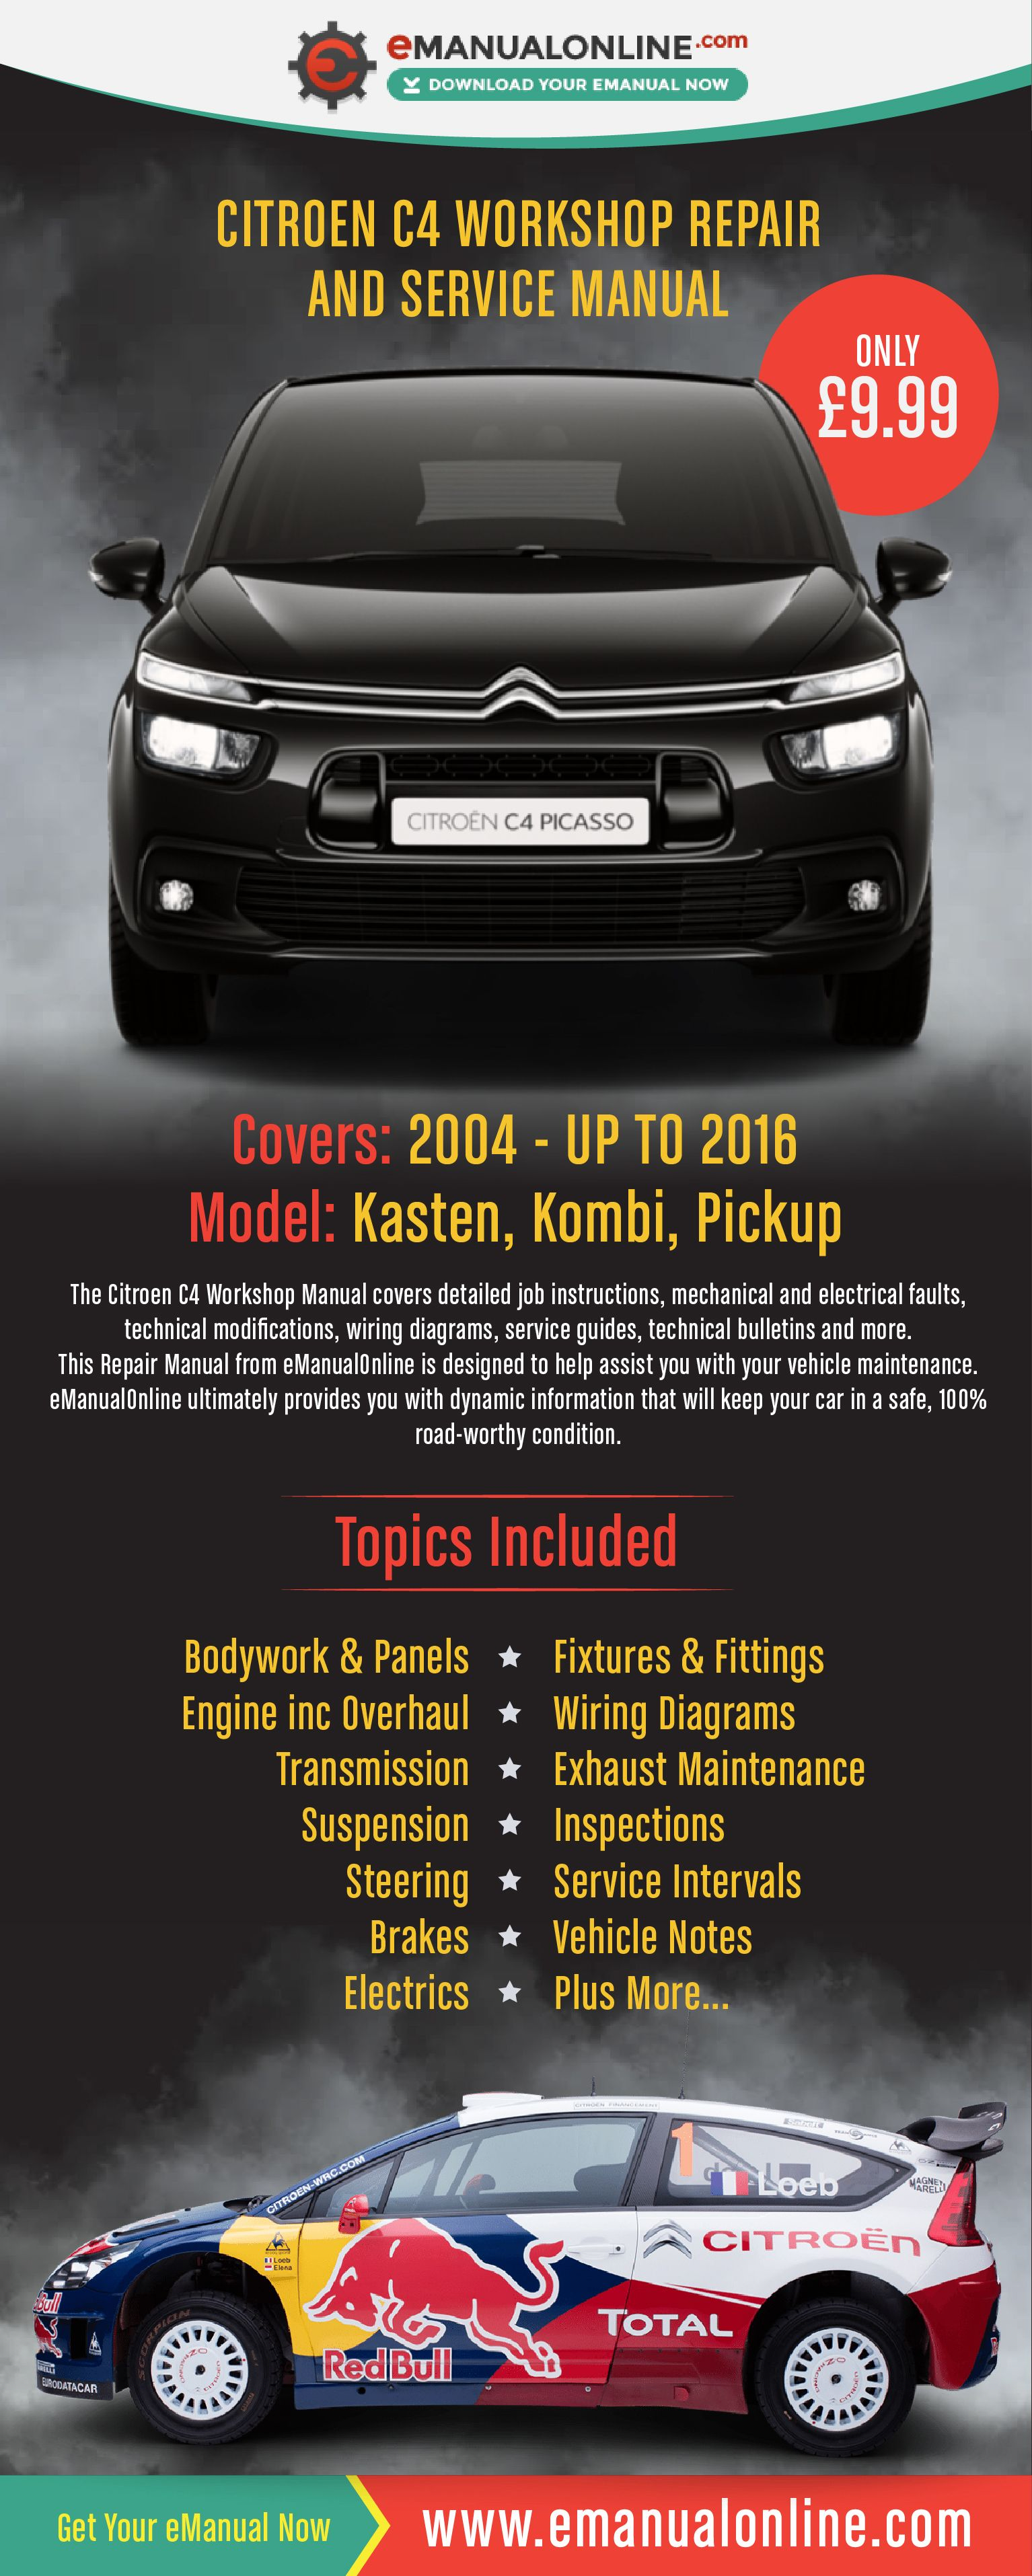 Citroen Workshop Repair And Service Manual